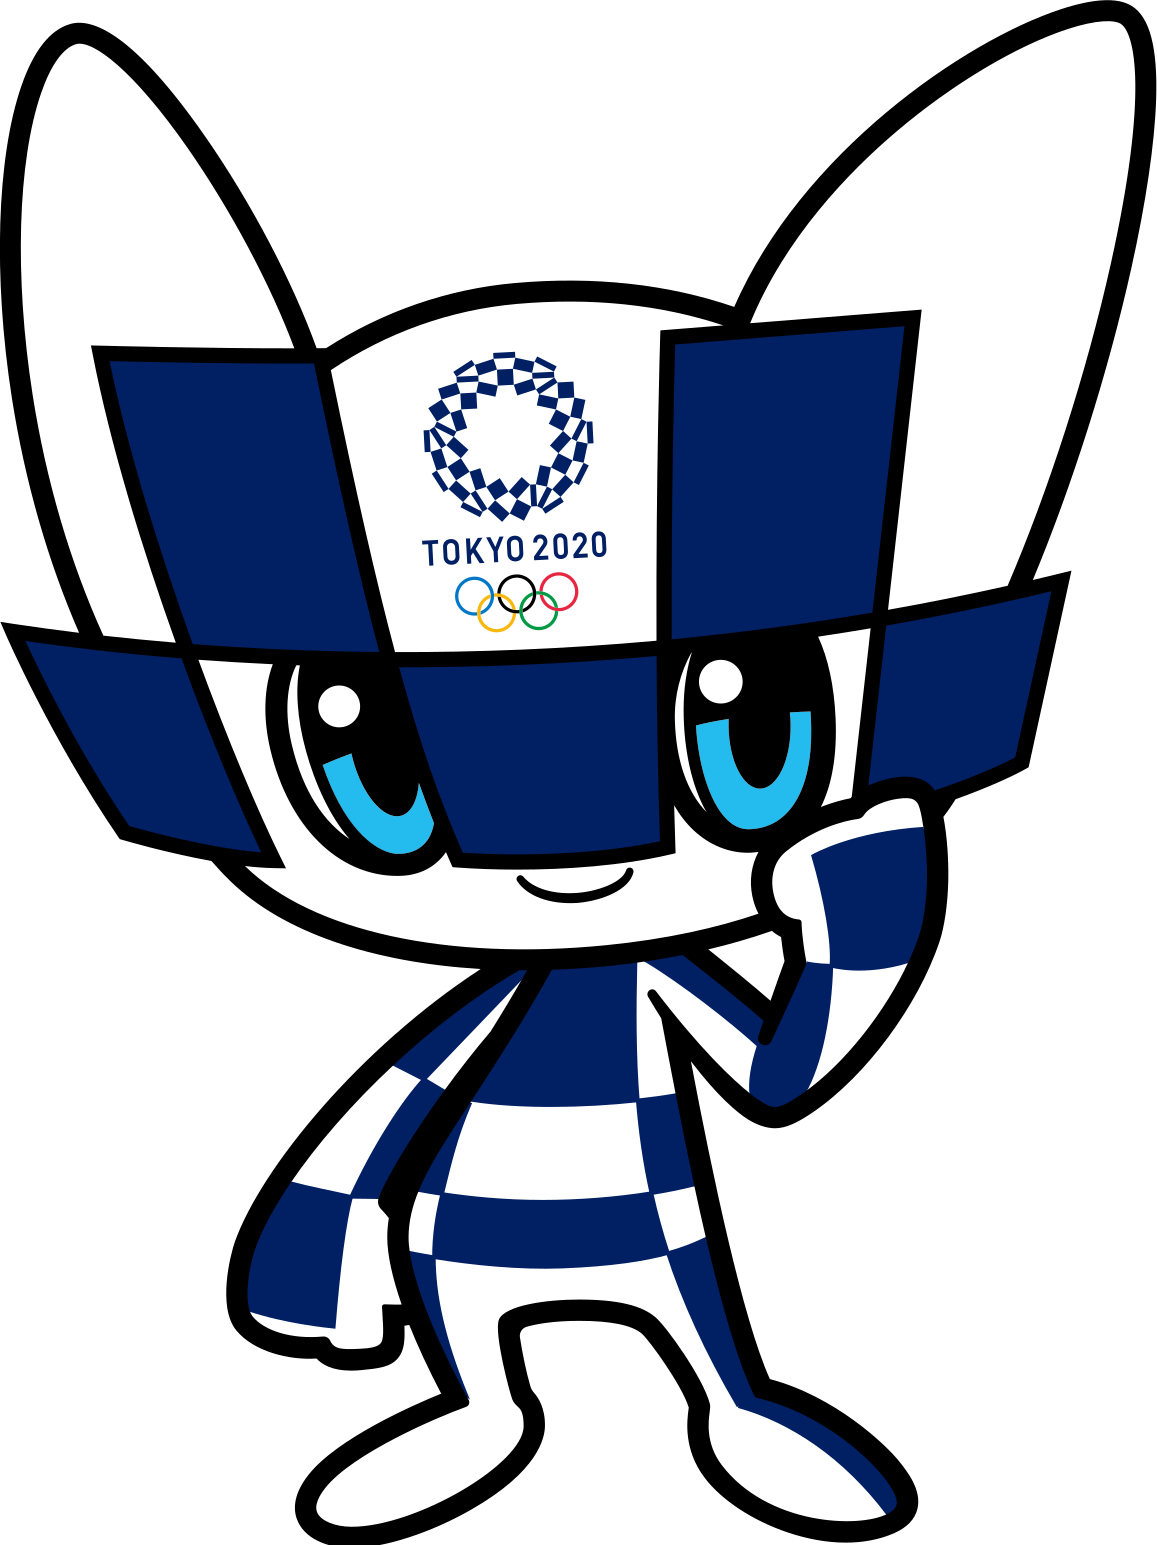 tokyo 2020 mascots olympics wiki fandom powered by wikia. Black Bedroom Furniture Sets. Home Design Ideas